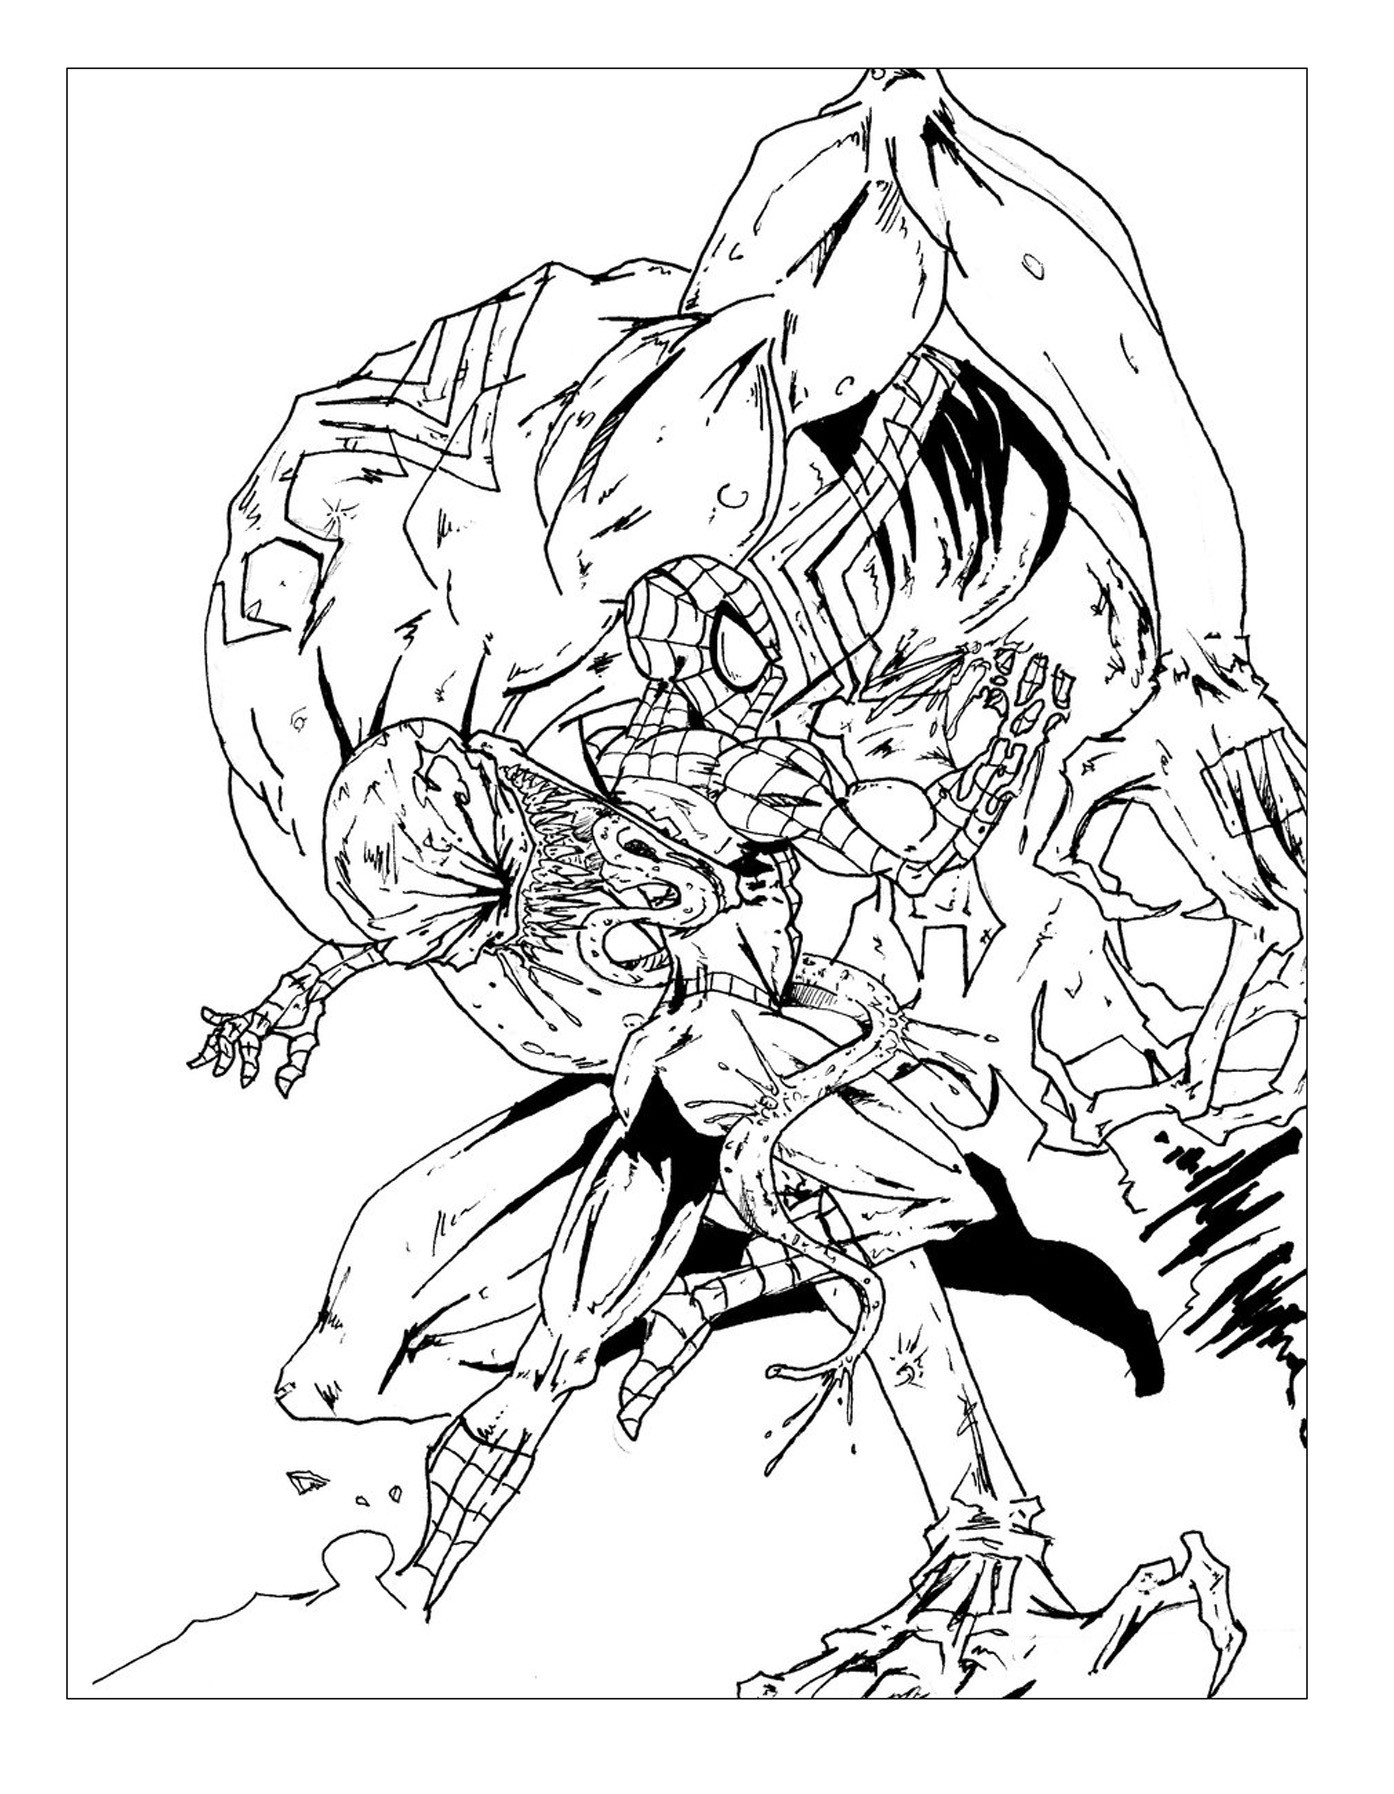 Spiderman Coloring Pages For Adults  Books and ics Coloring pages for adults coloring